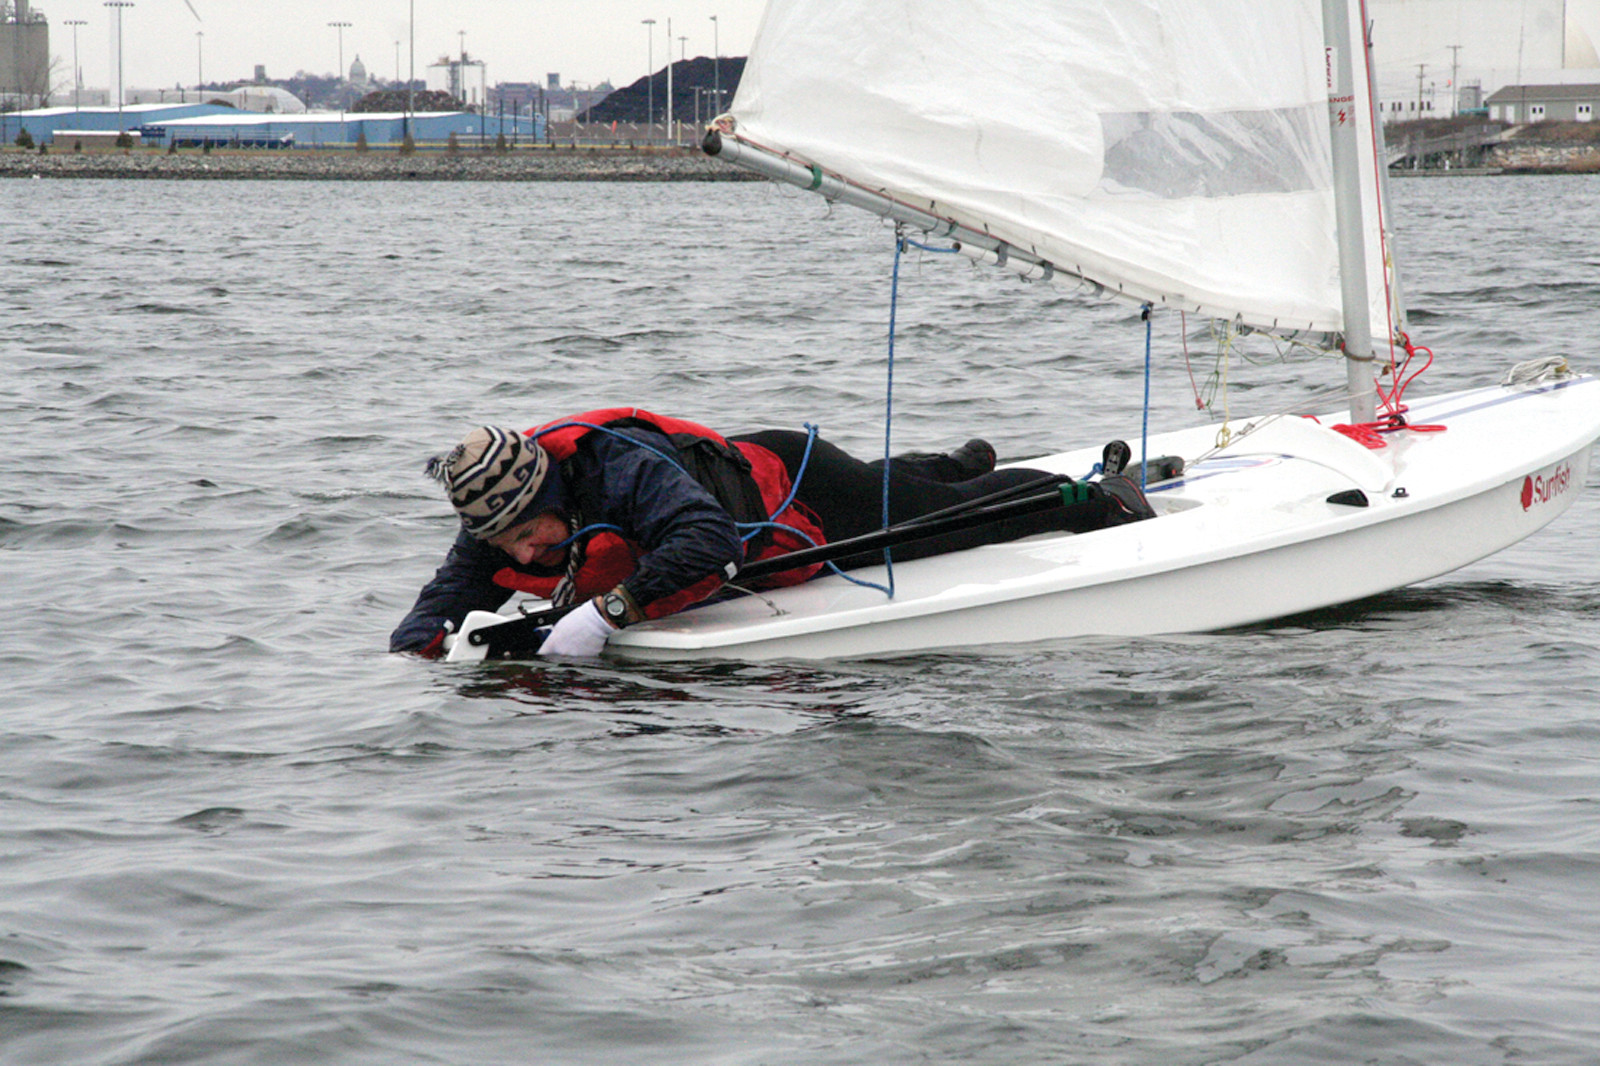 NOT WHAT YOU WANT TO HAPPEN: Jeff Lanphear finds himself practically in the water after the rudder to his boat popped free. The mid-race adjustment put him in last place for the first race. He bounced back to take a first in the second race.